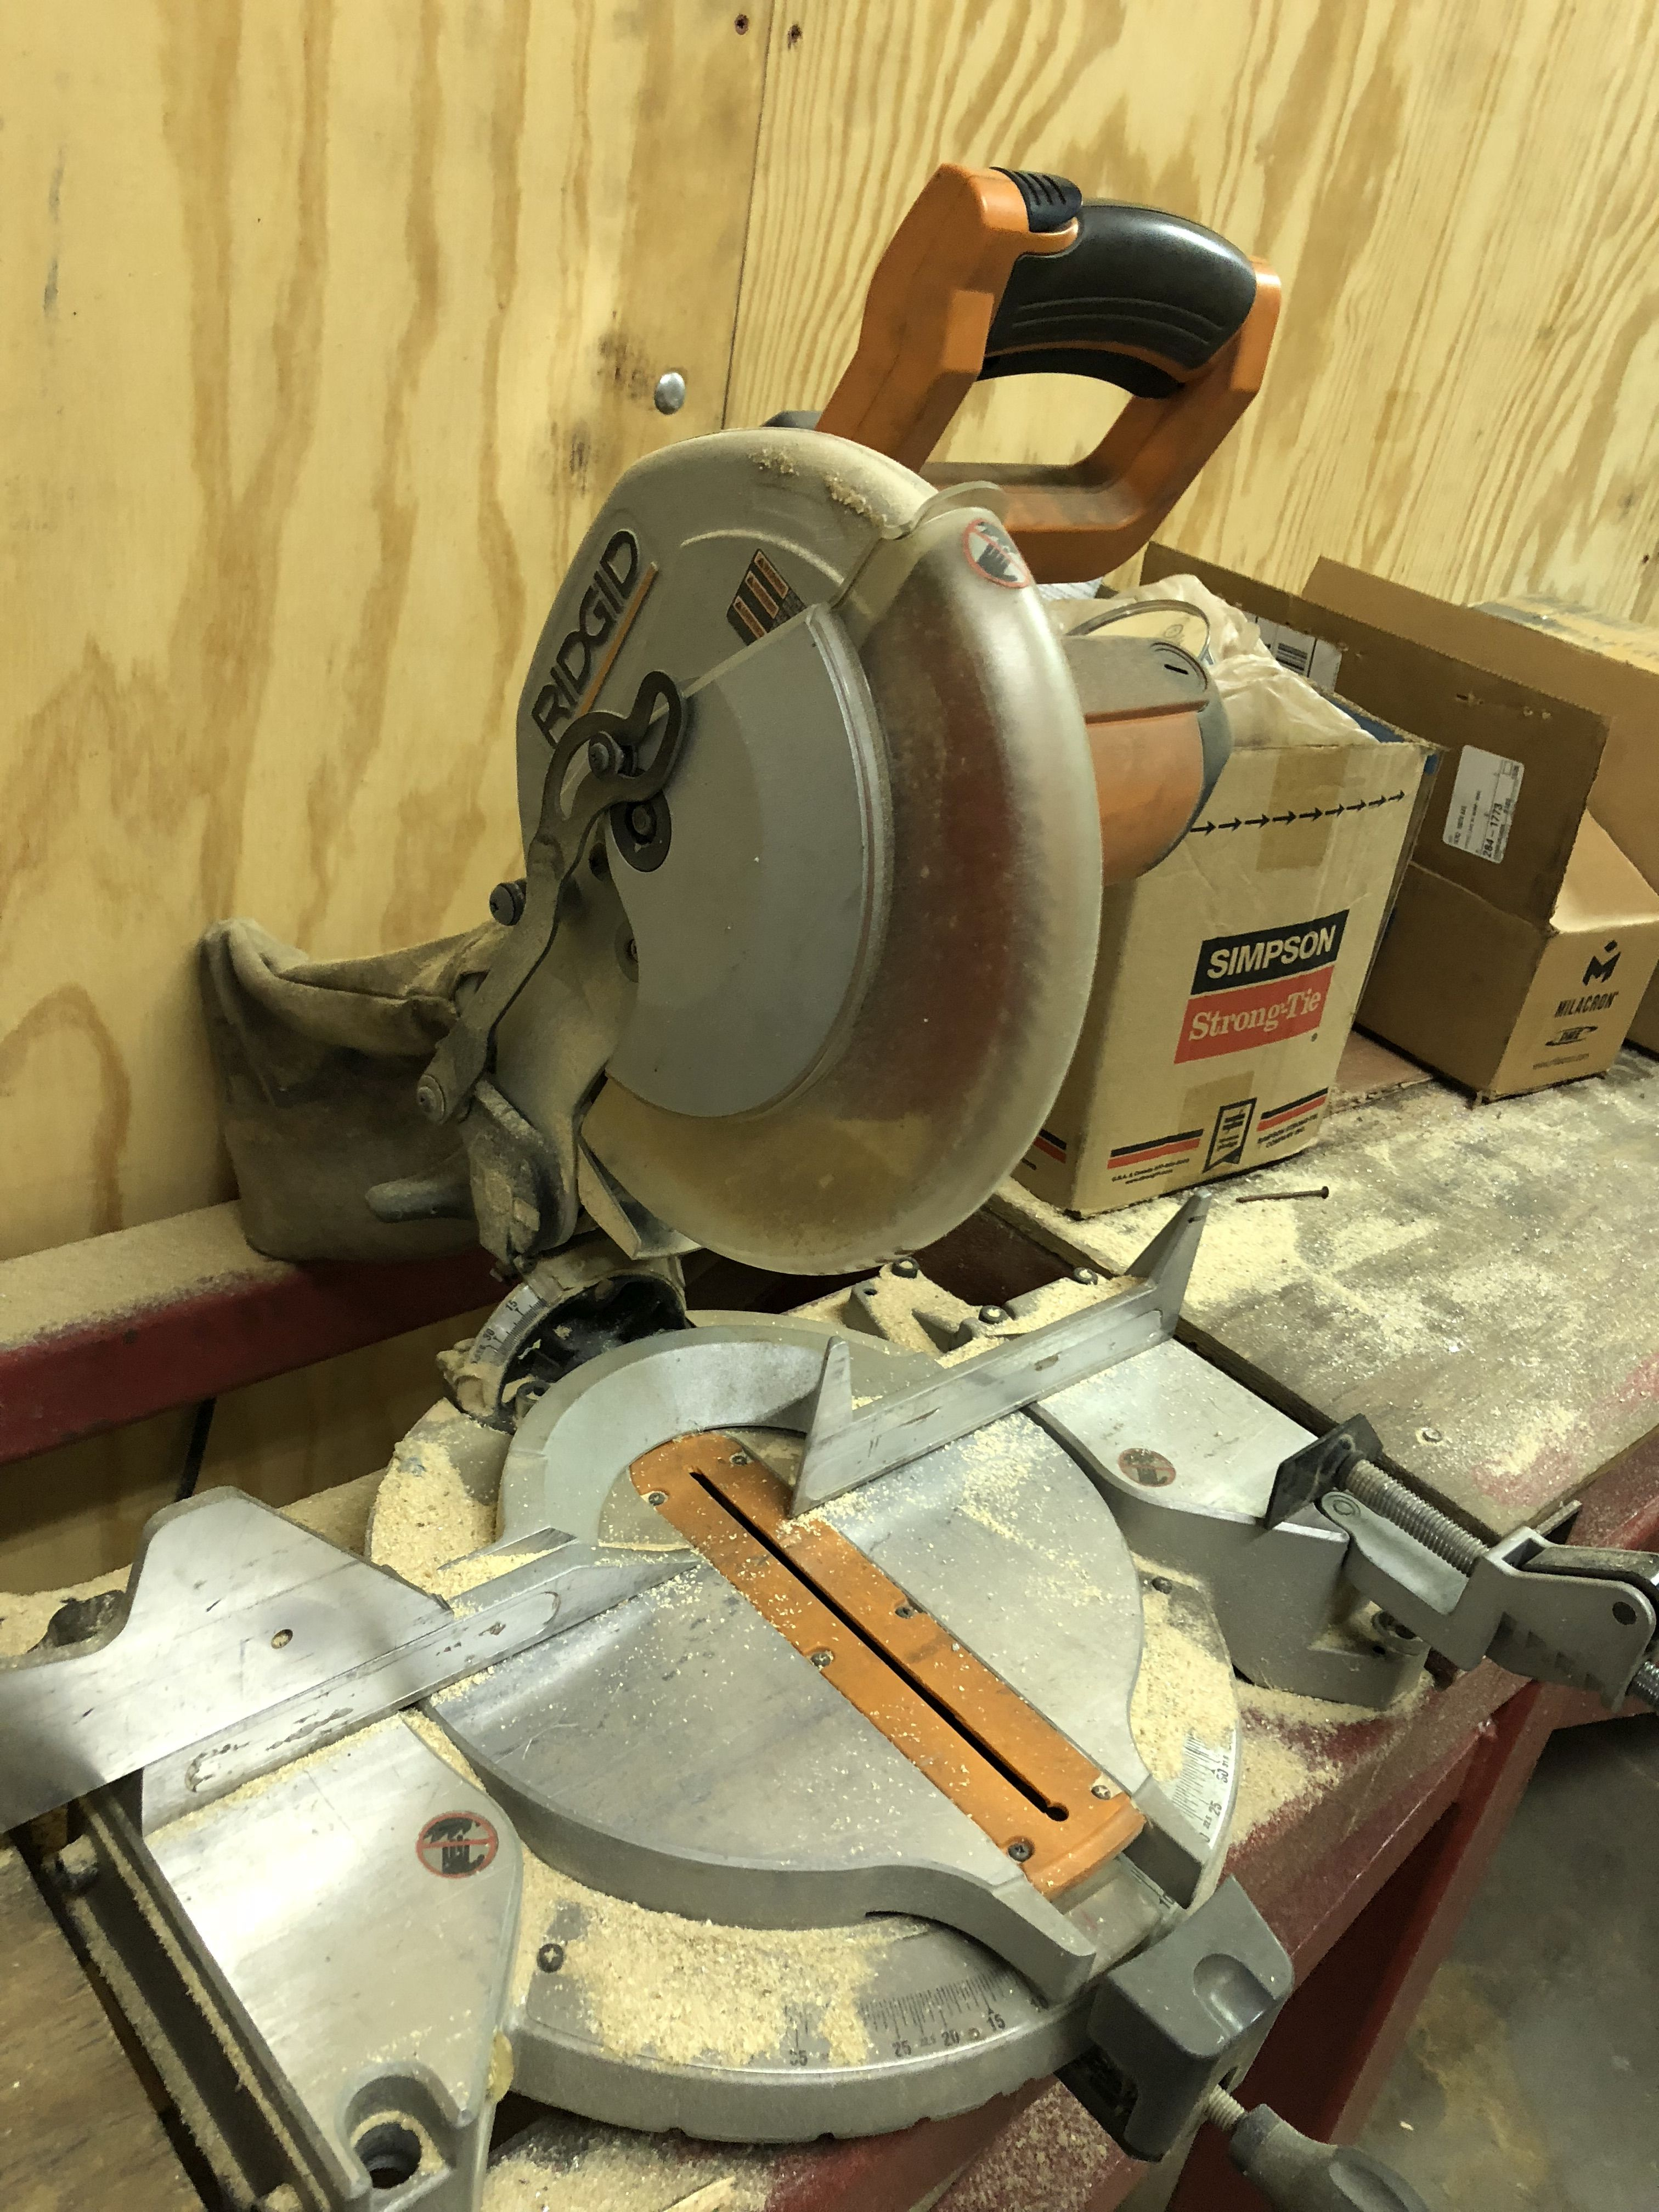 Lot 36 - RIDGID 10''MITER SAW, WITH STEEL TABLE/WOOD TOP, MEASURES 8' LONG x 24'' WIDE x 36'' TALL [